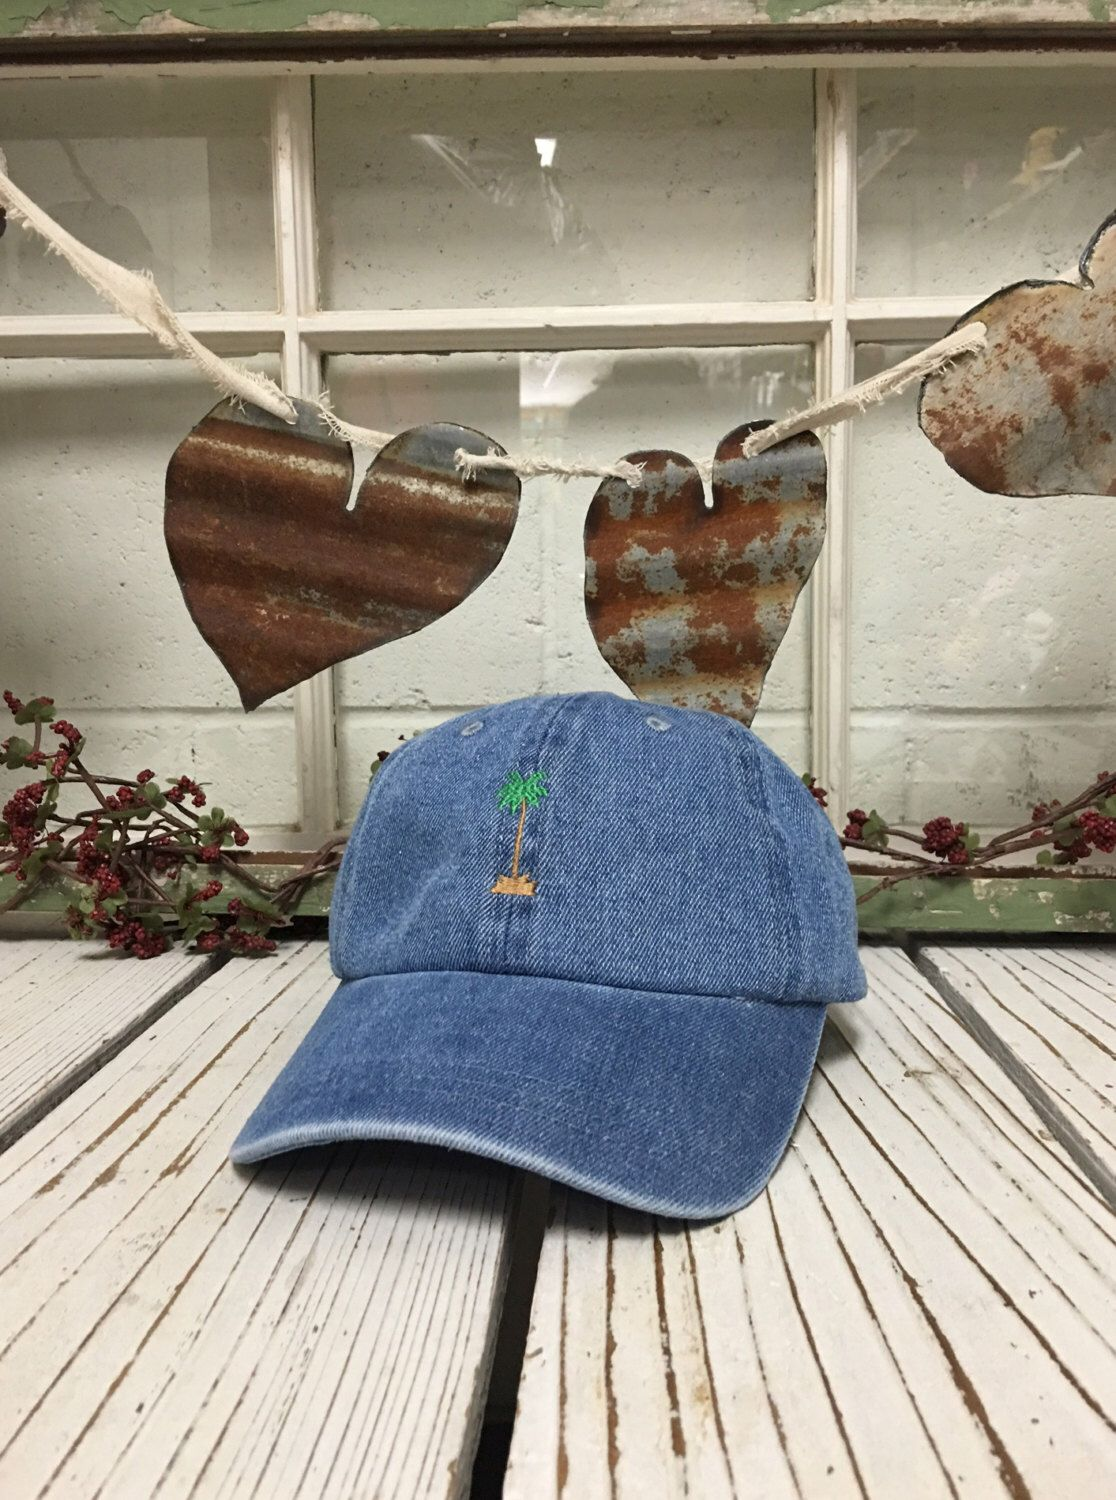 PALM TREE Embroidered Baseball Cap Low Profile Curved Bill - Light Denim by  PrfctoLifestyle on Etsy ff951388eaea